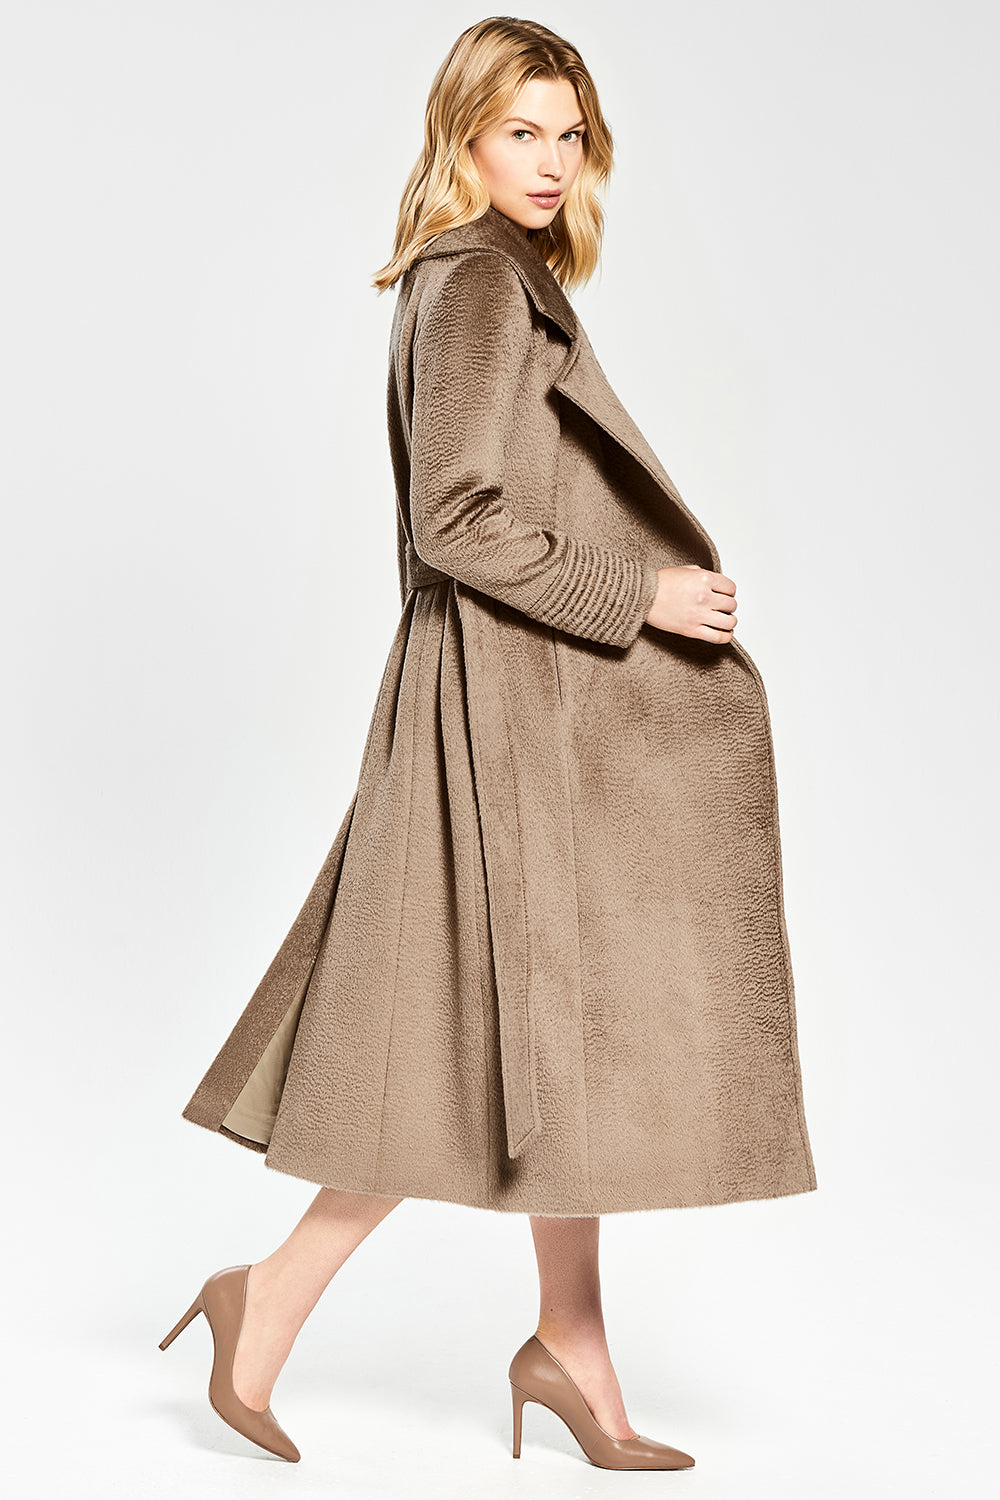 Sentaler Suri Alpaca Long Notched Collar Wrap Coat featured in Suri Alpaca and available in Hazelnut. Seen from side.